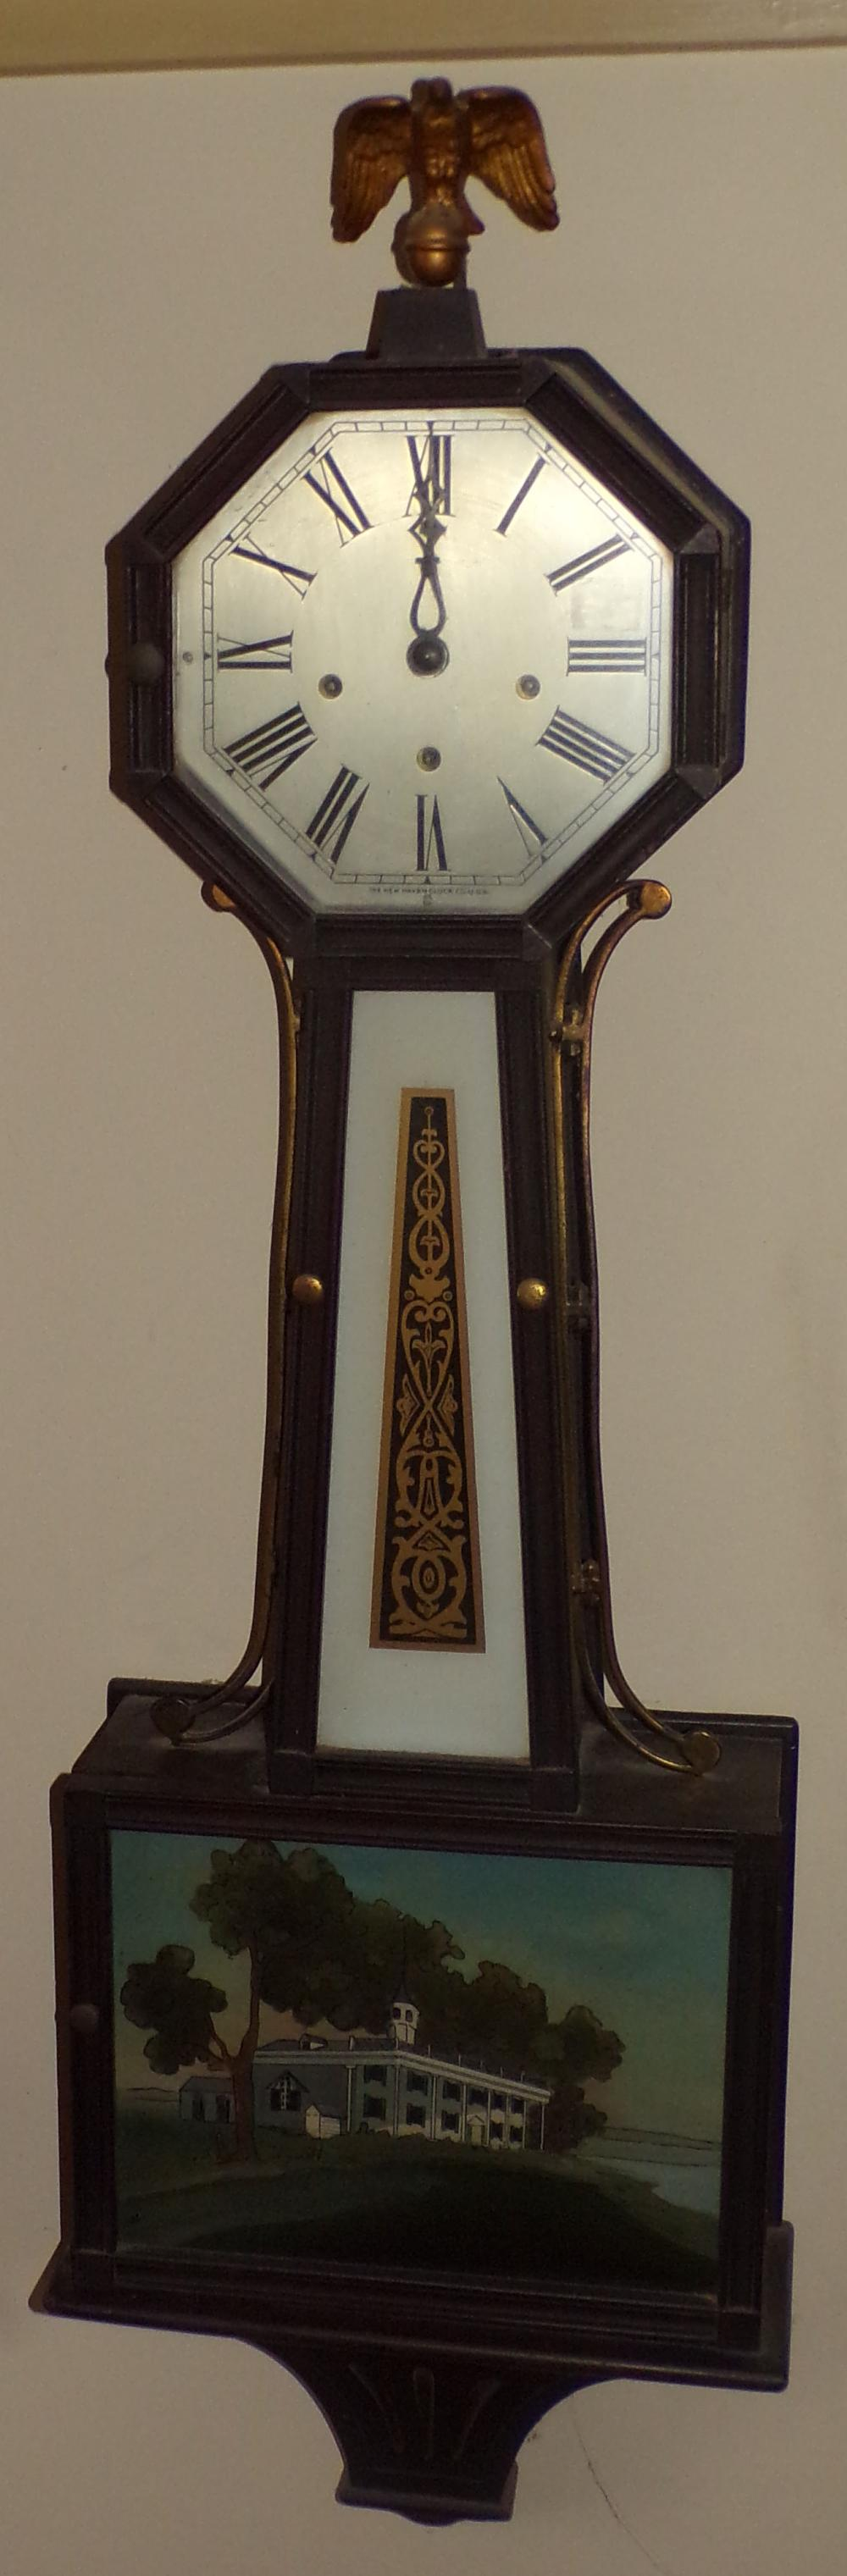 1st/2nd Quarter 20th C Vintage New Haven Banjo Clock